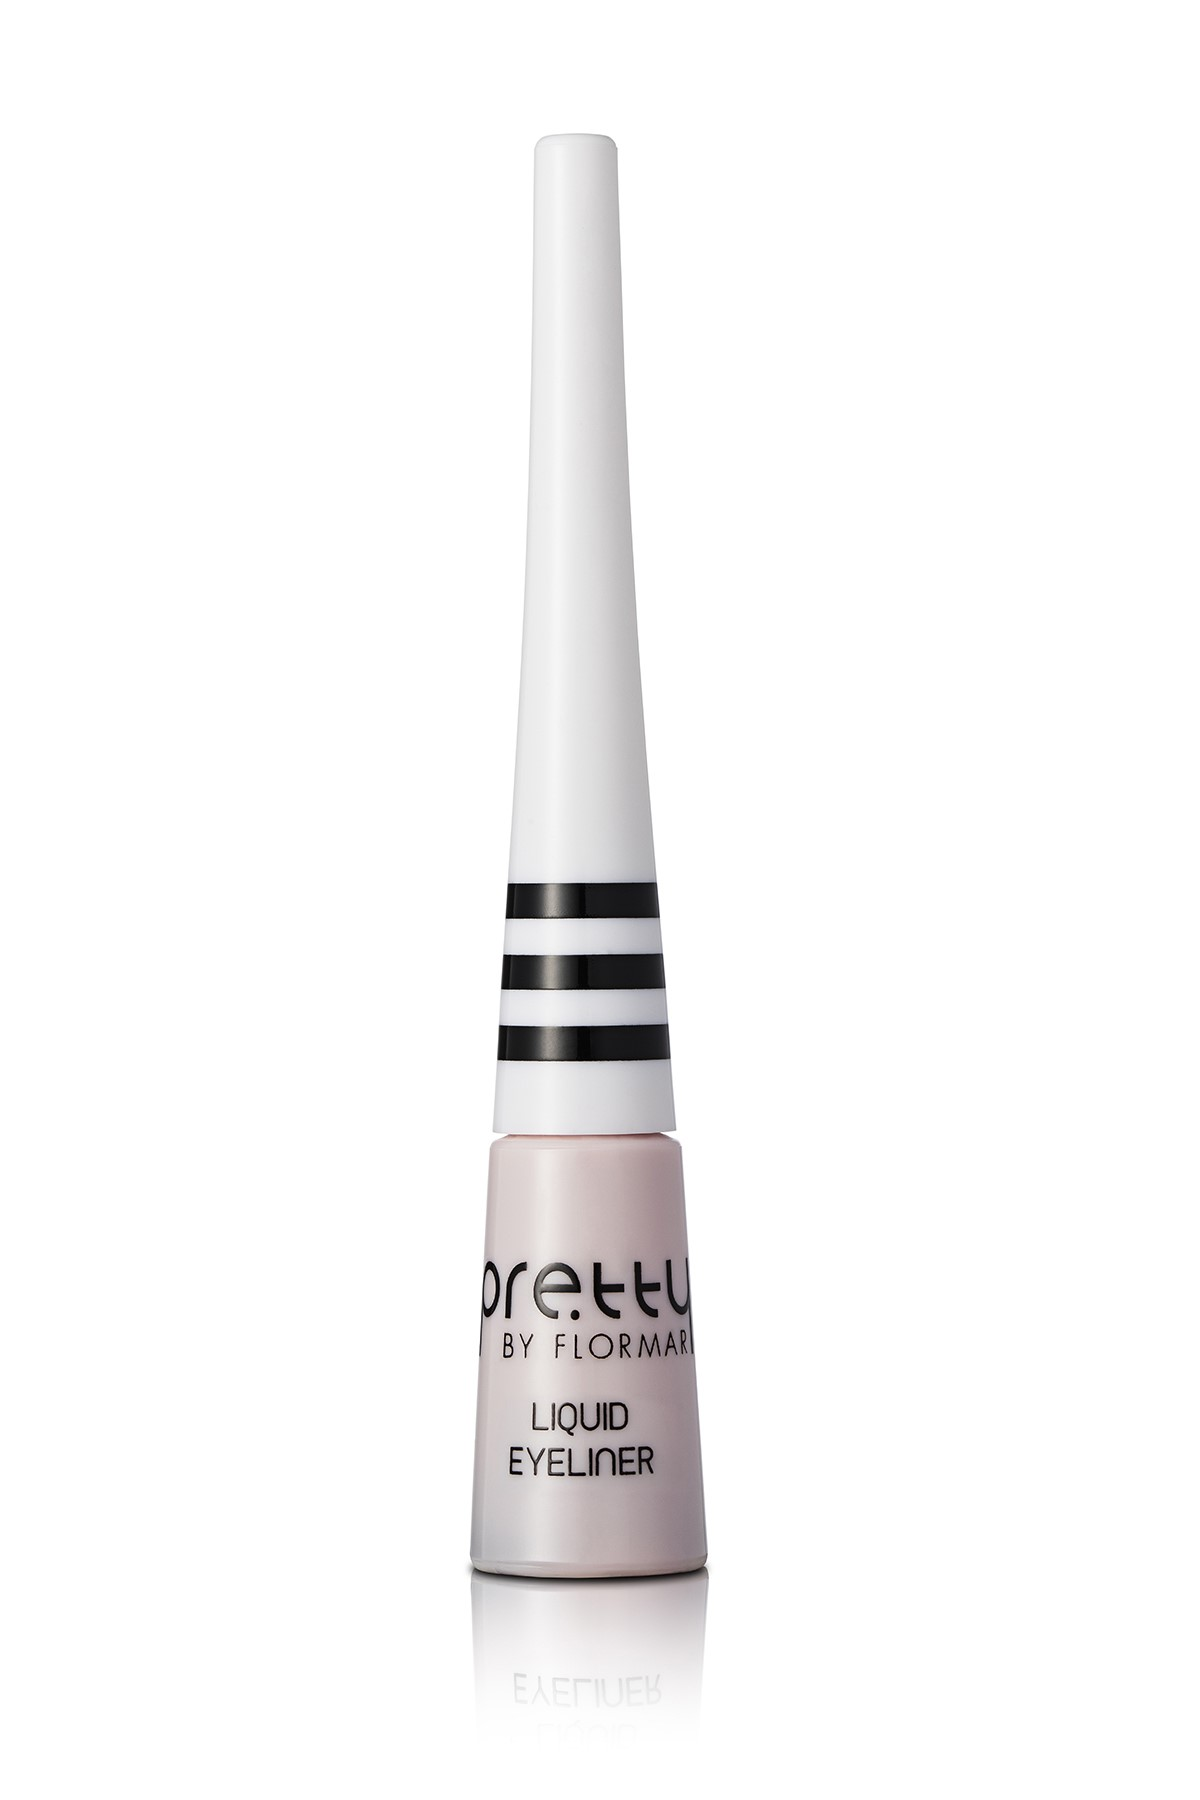 Flormar Siyah Eyeliner – Pretty Liquid Black 3,5 Ml 8690604461486 – 18.8 TL